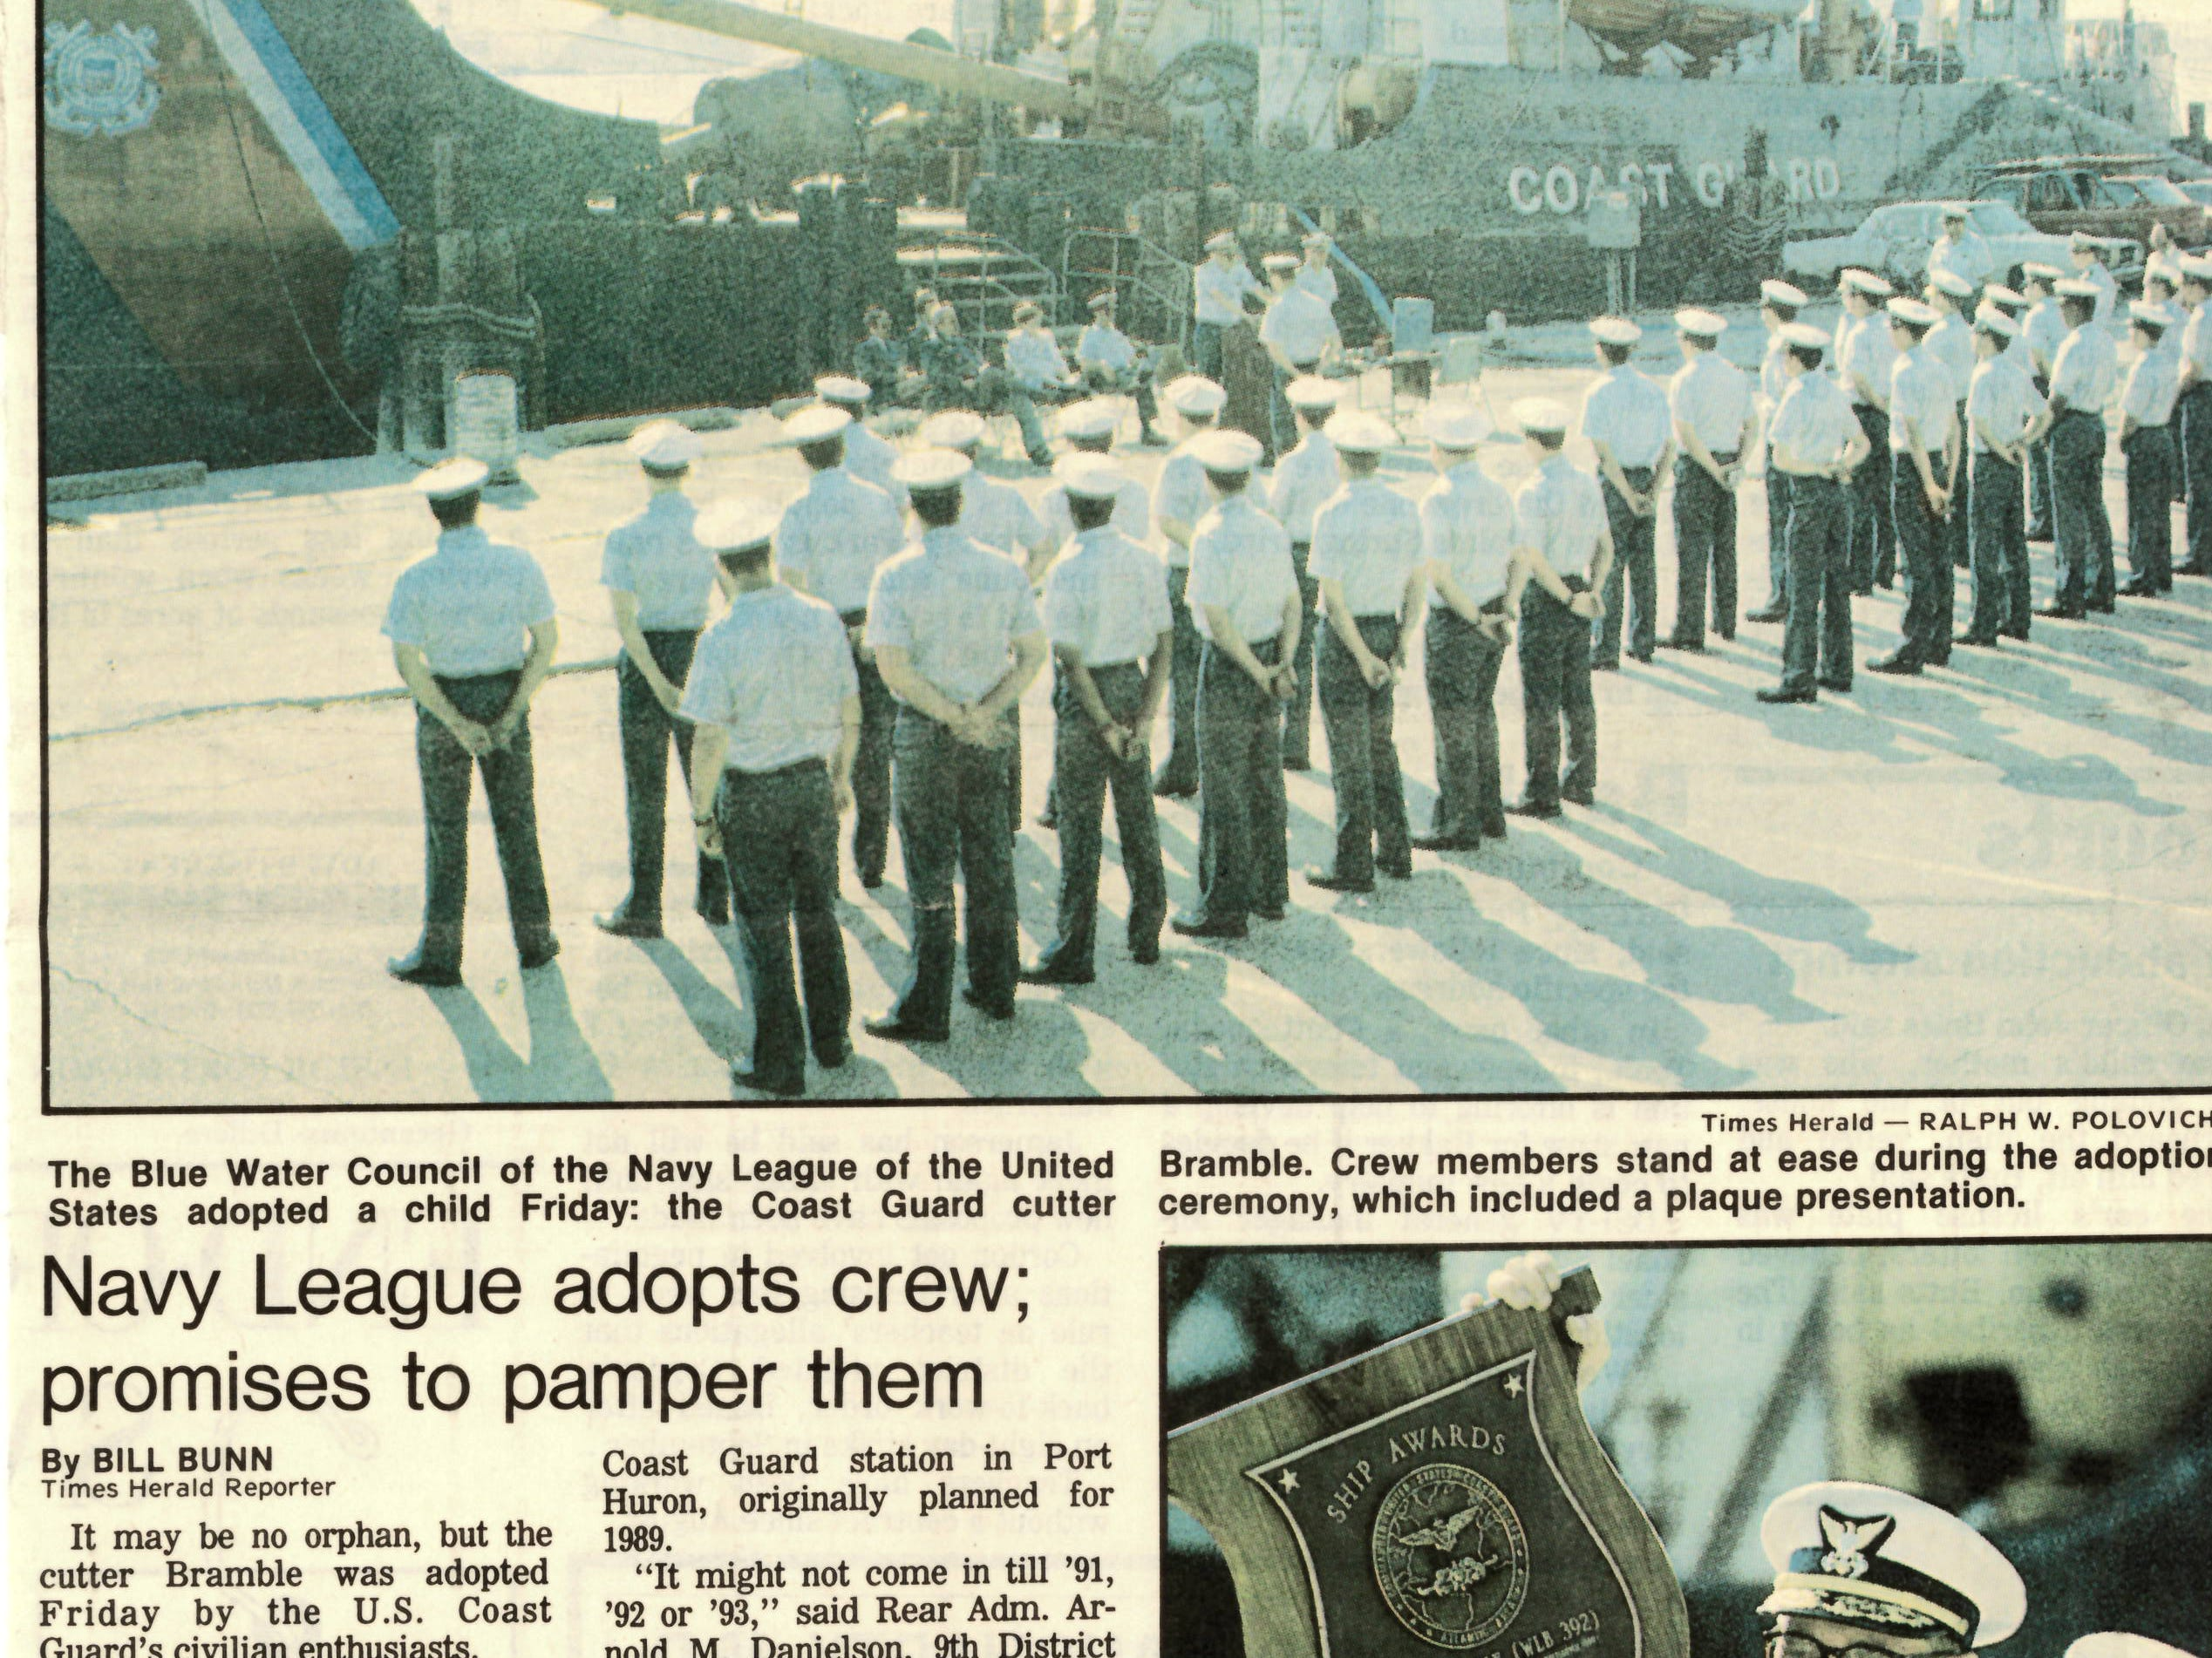 A newspaper clipping from May 1987 shows the adoption ceremony and plaque presentation from when the Blue Water Council of the Navy League of the United States dopted the USCGC Bramble.